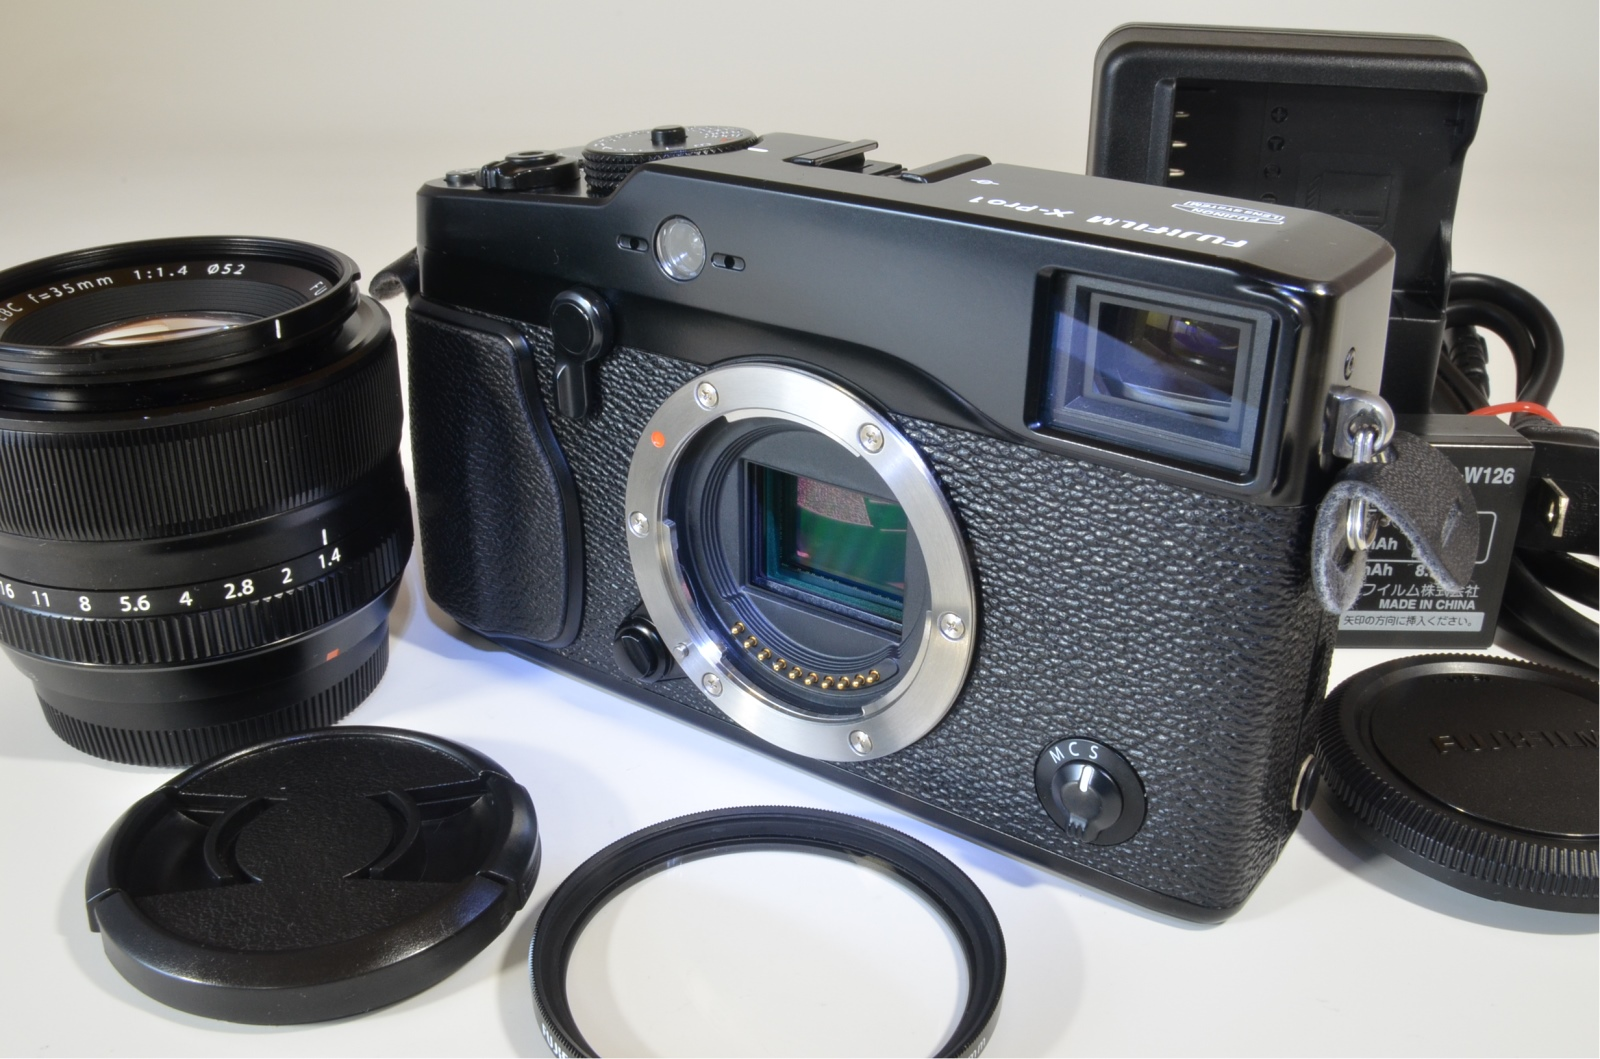 fujifilm x-pro1 xf35mm f1.4 r digital camera